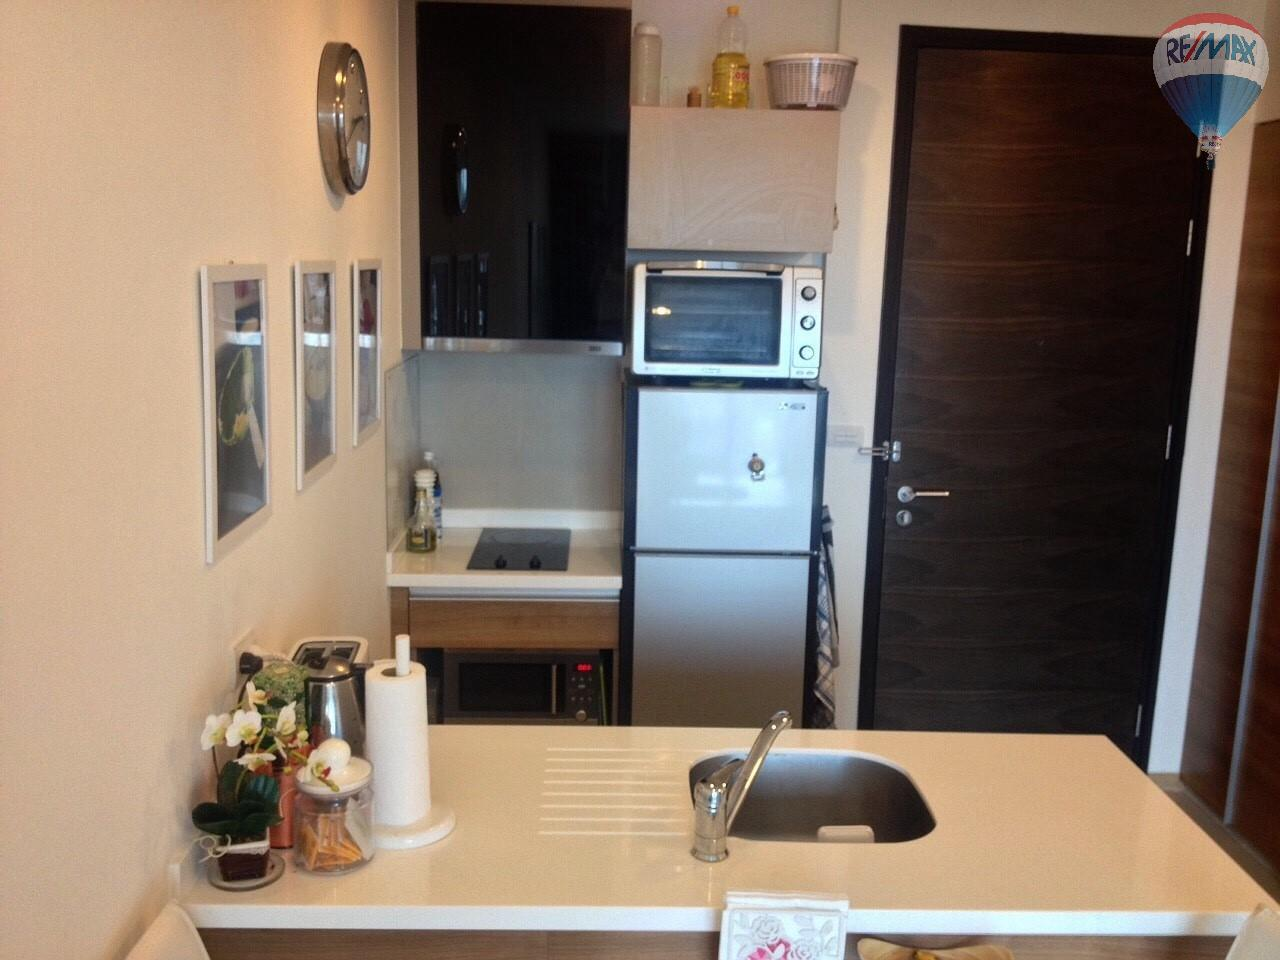 RE/MAX Properties Agency's 1 bedroom 45 Sq.M. for renting 32,000 THB in Rhythm Sukhumvit 13